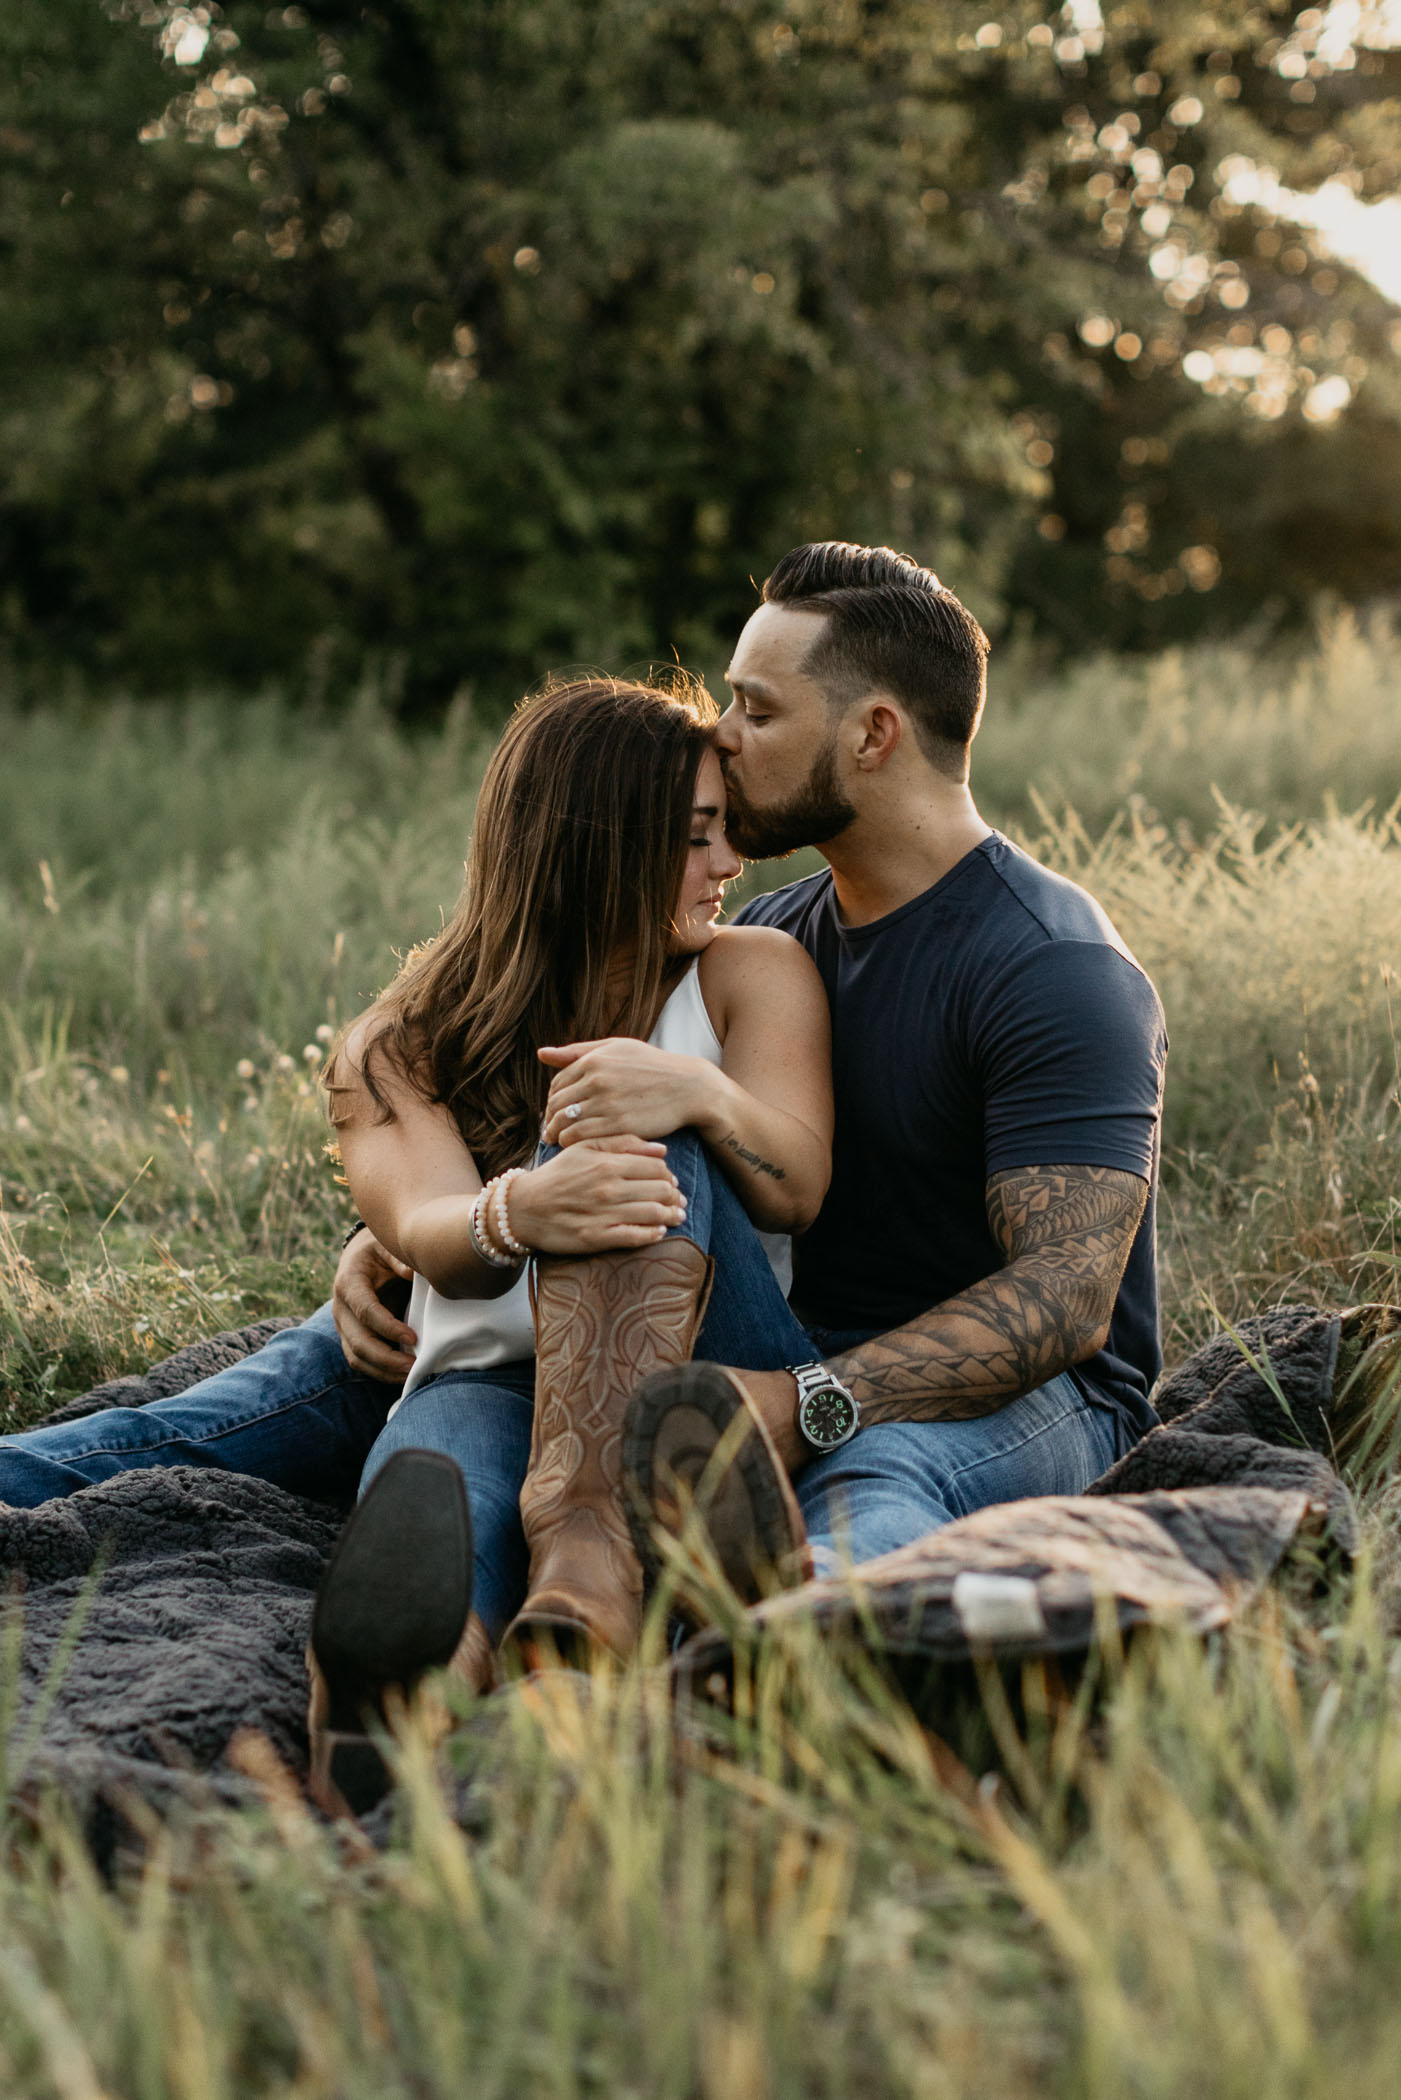 Couple sitting in grass being romantic